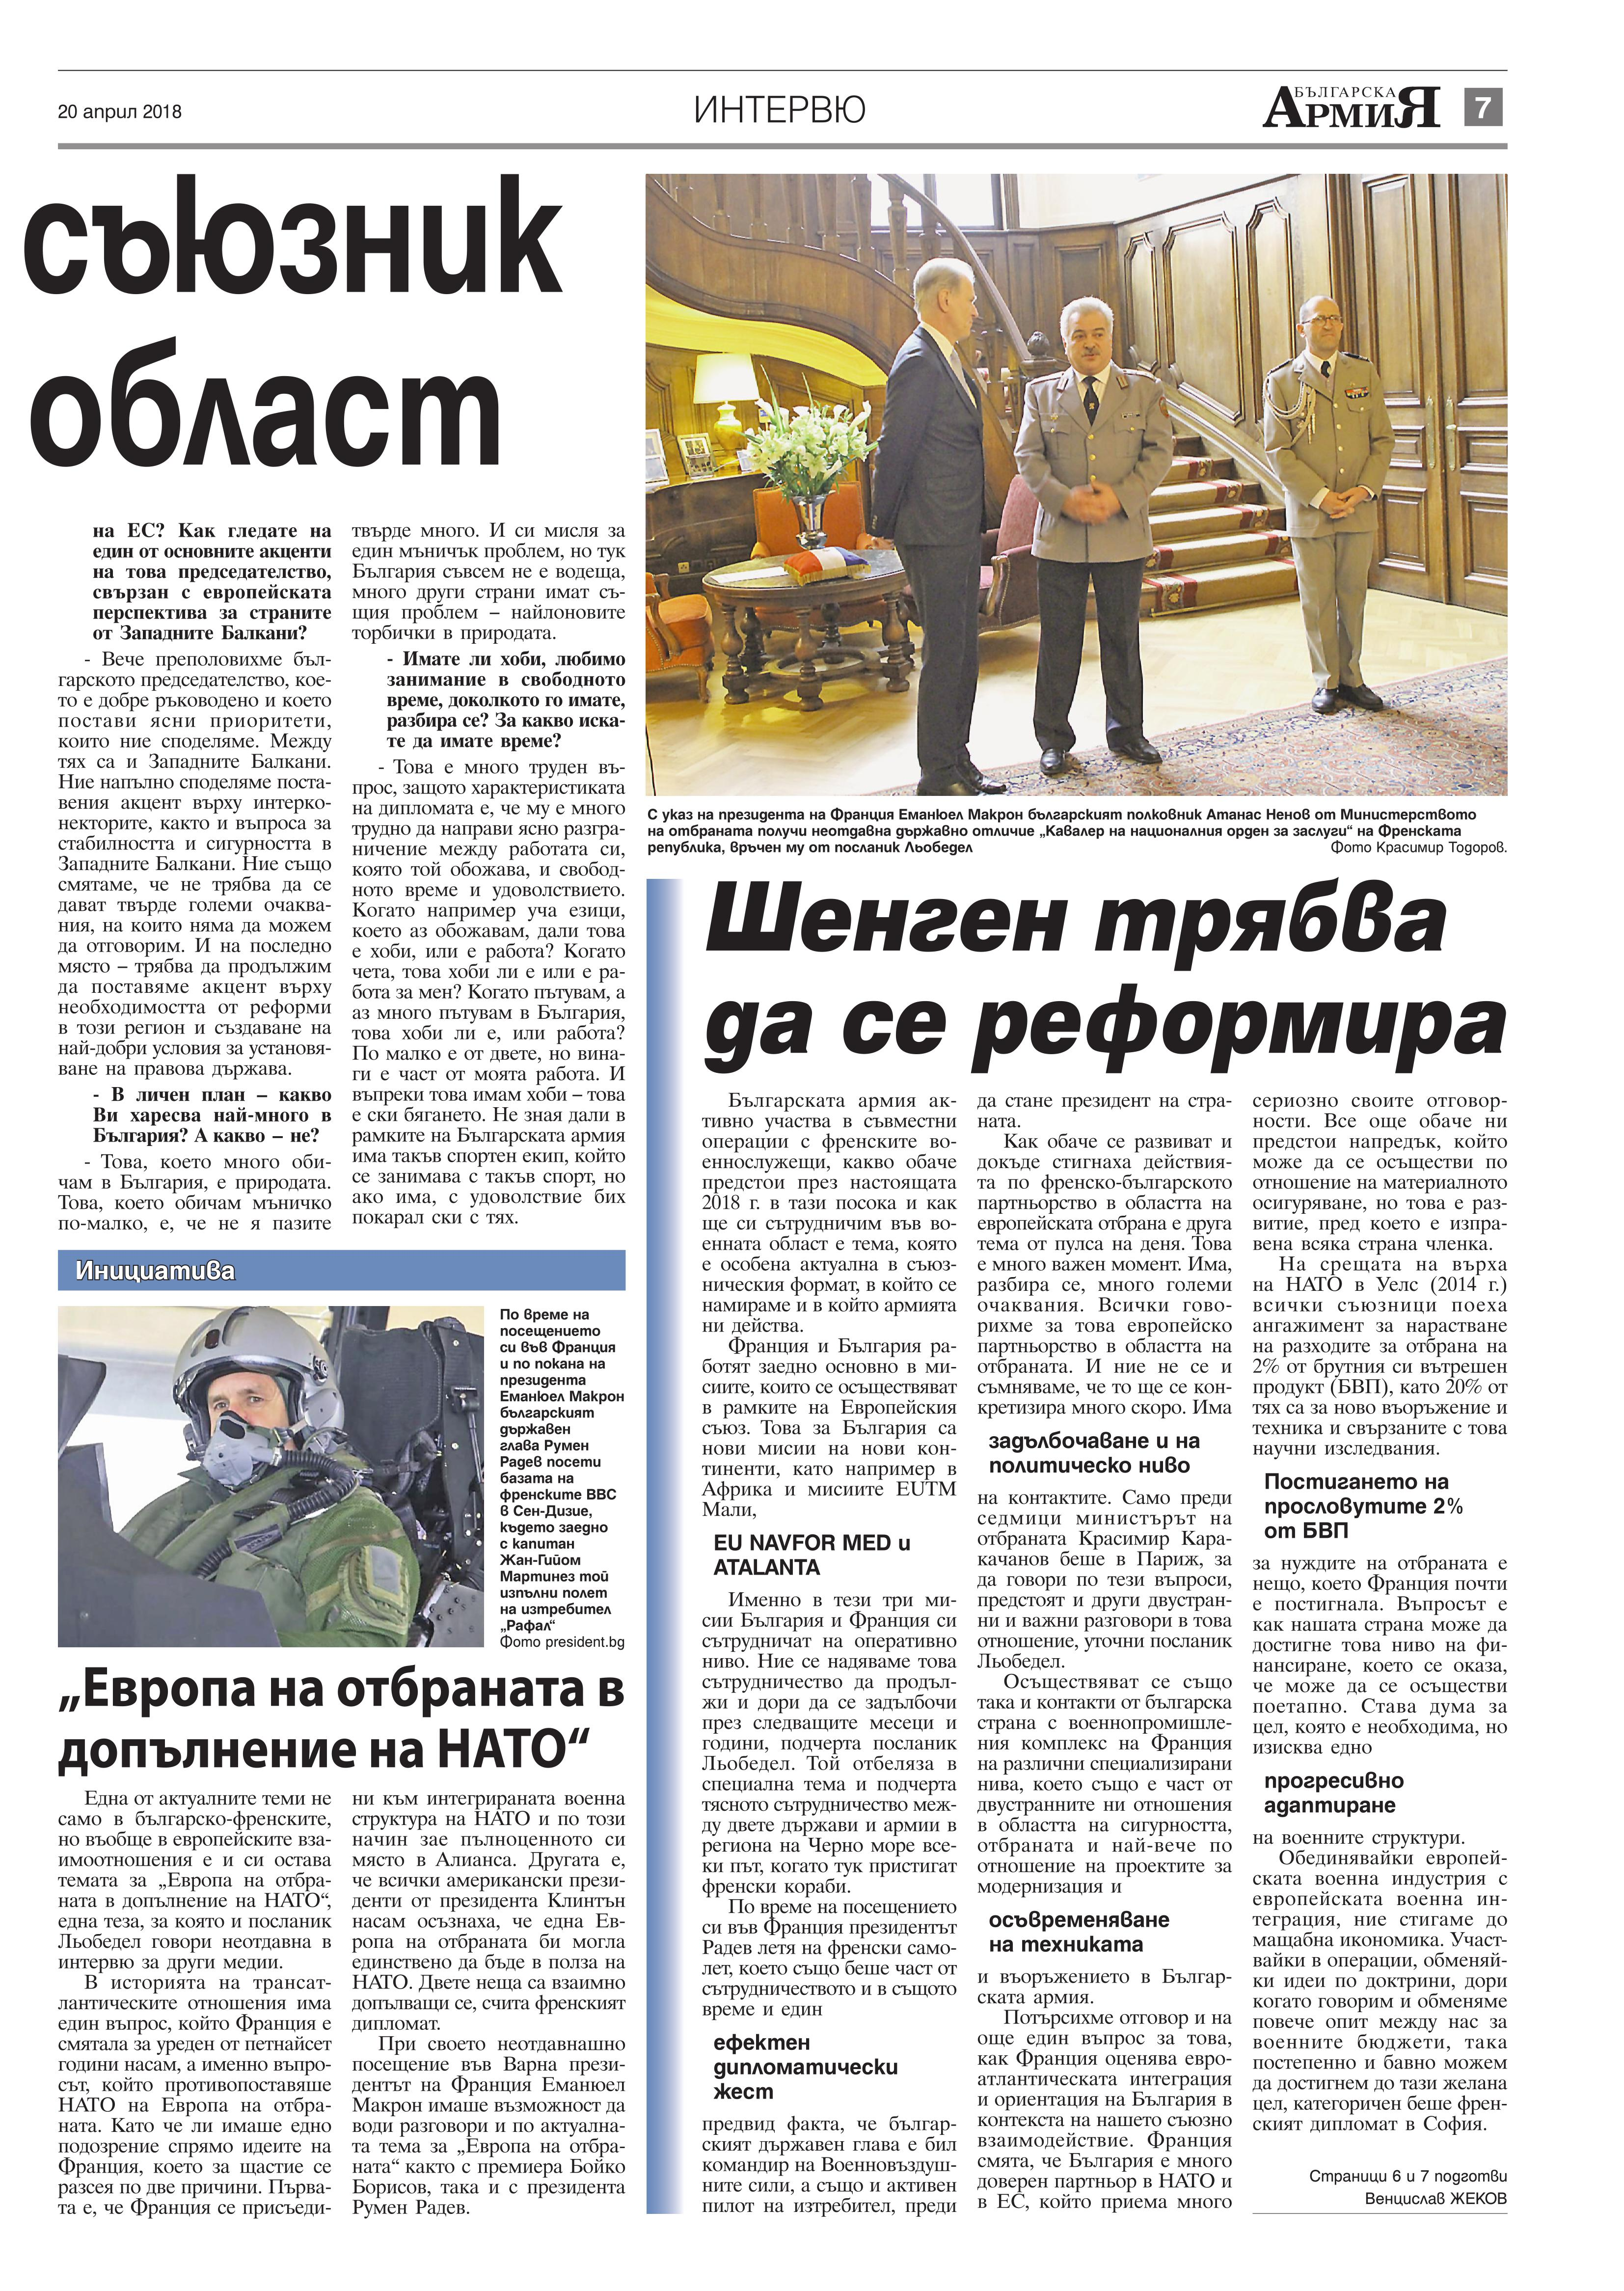 http://armymedia.bg/wp-content/uploads/2015/06/07.page1_-46.jpg